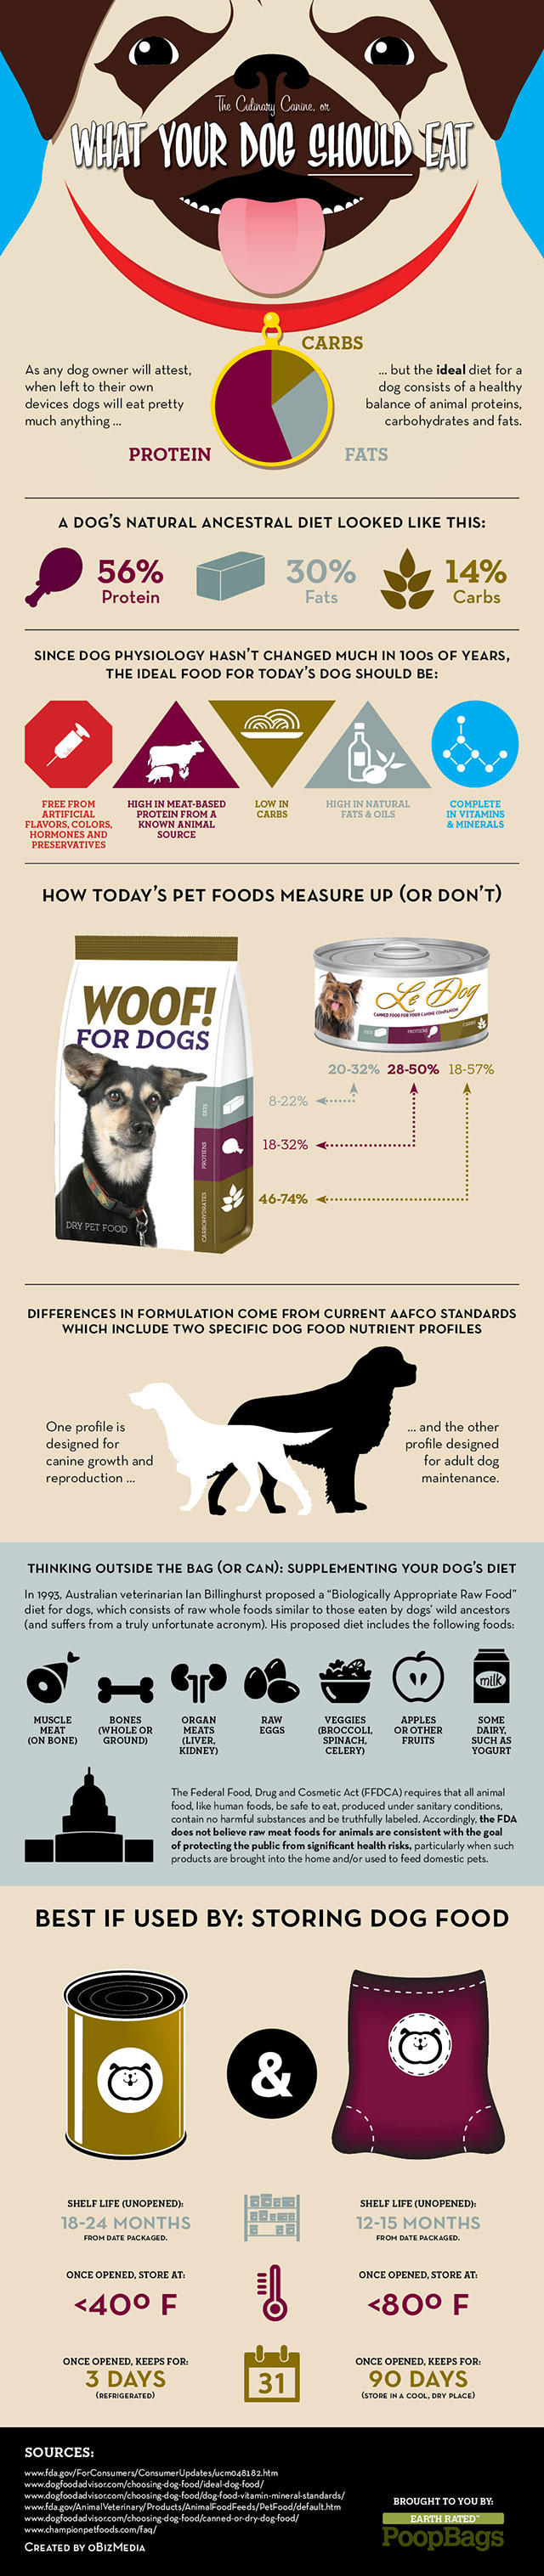 What Your Dog Should Eat